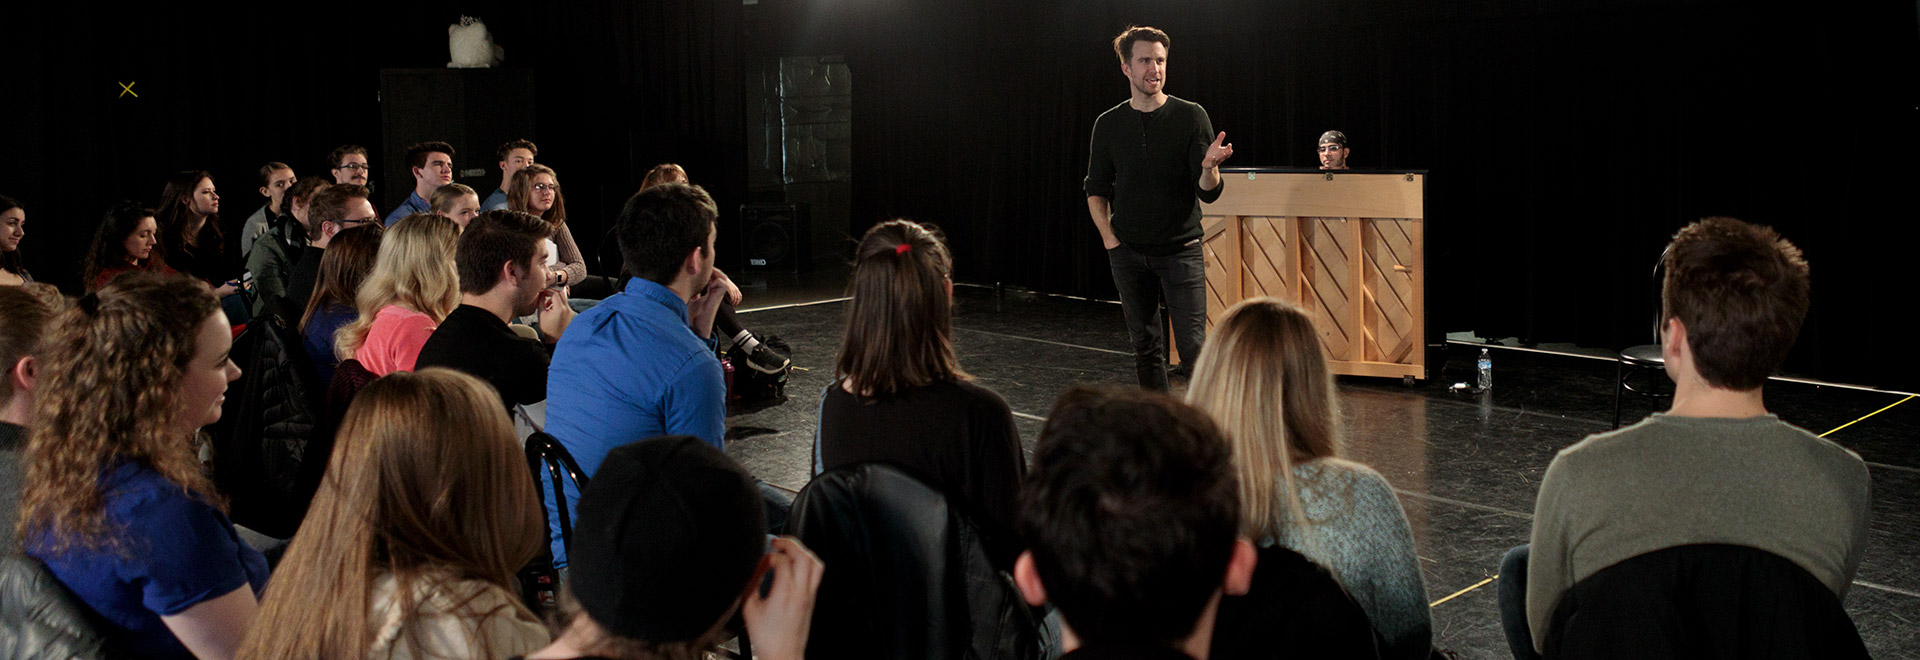 Tony Award winning actor Gavin Creel works with Ohio Northern University Department of Theatre students during a master class.